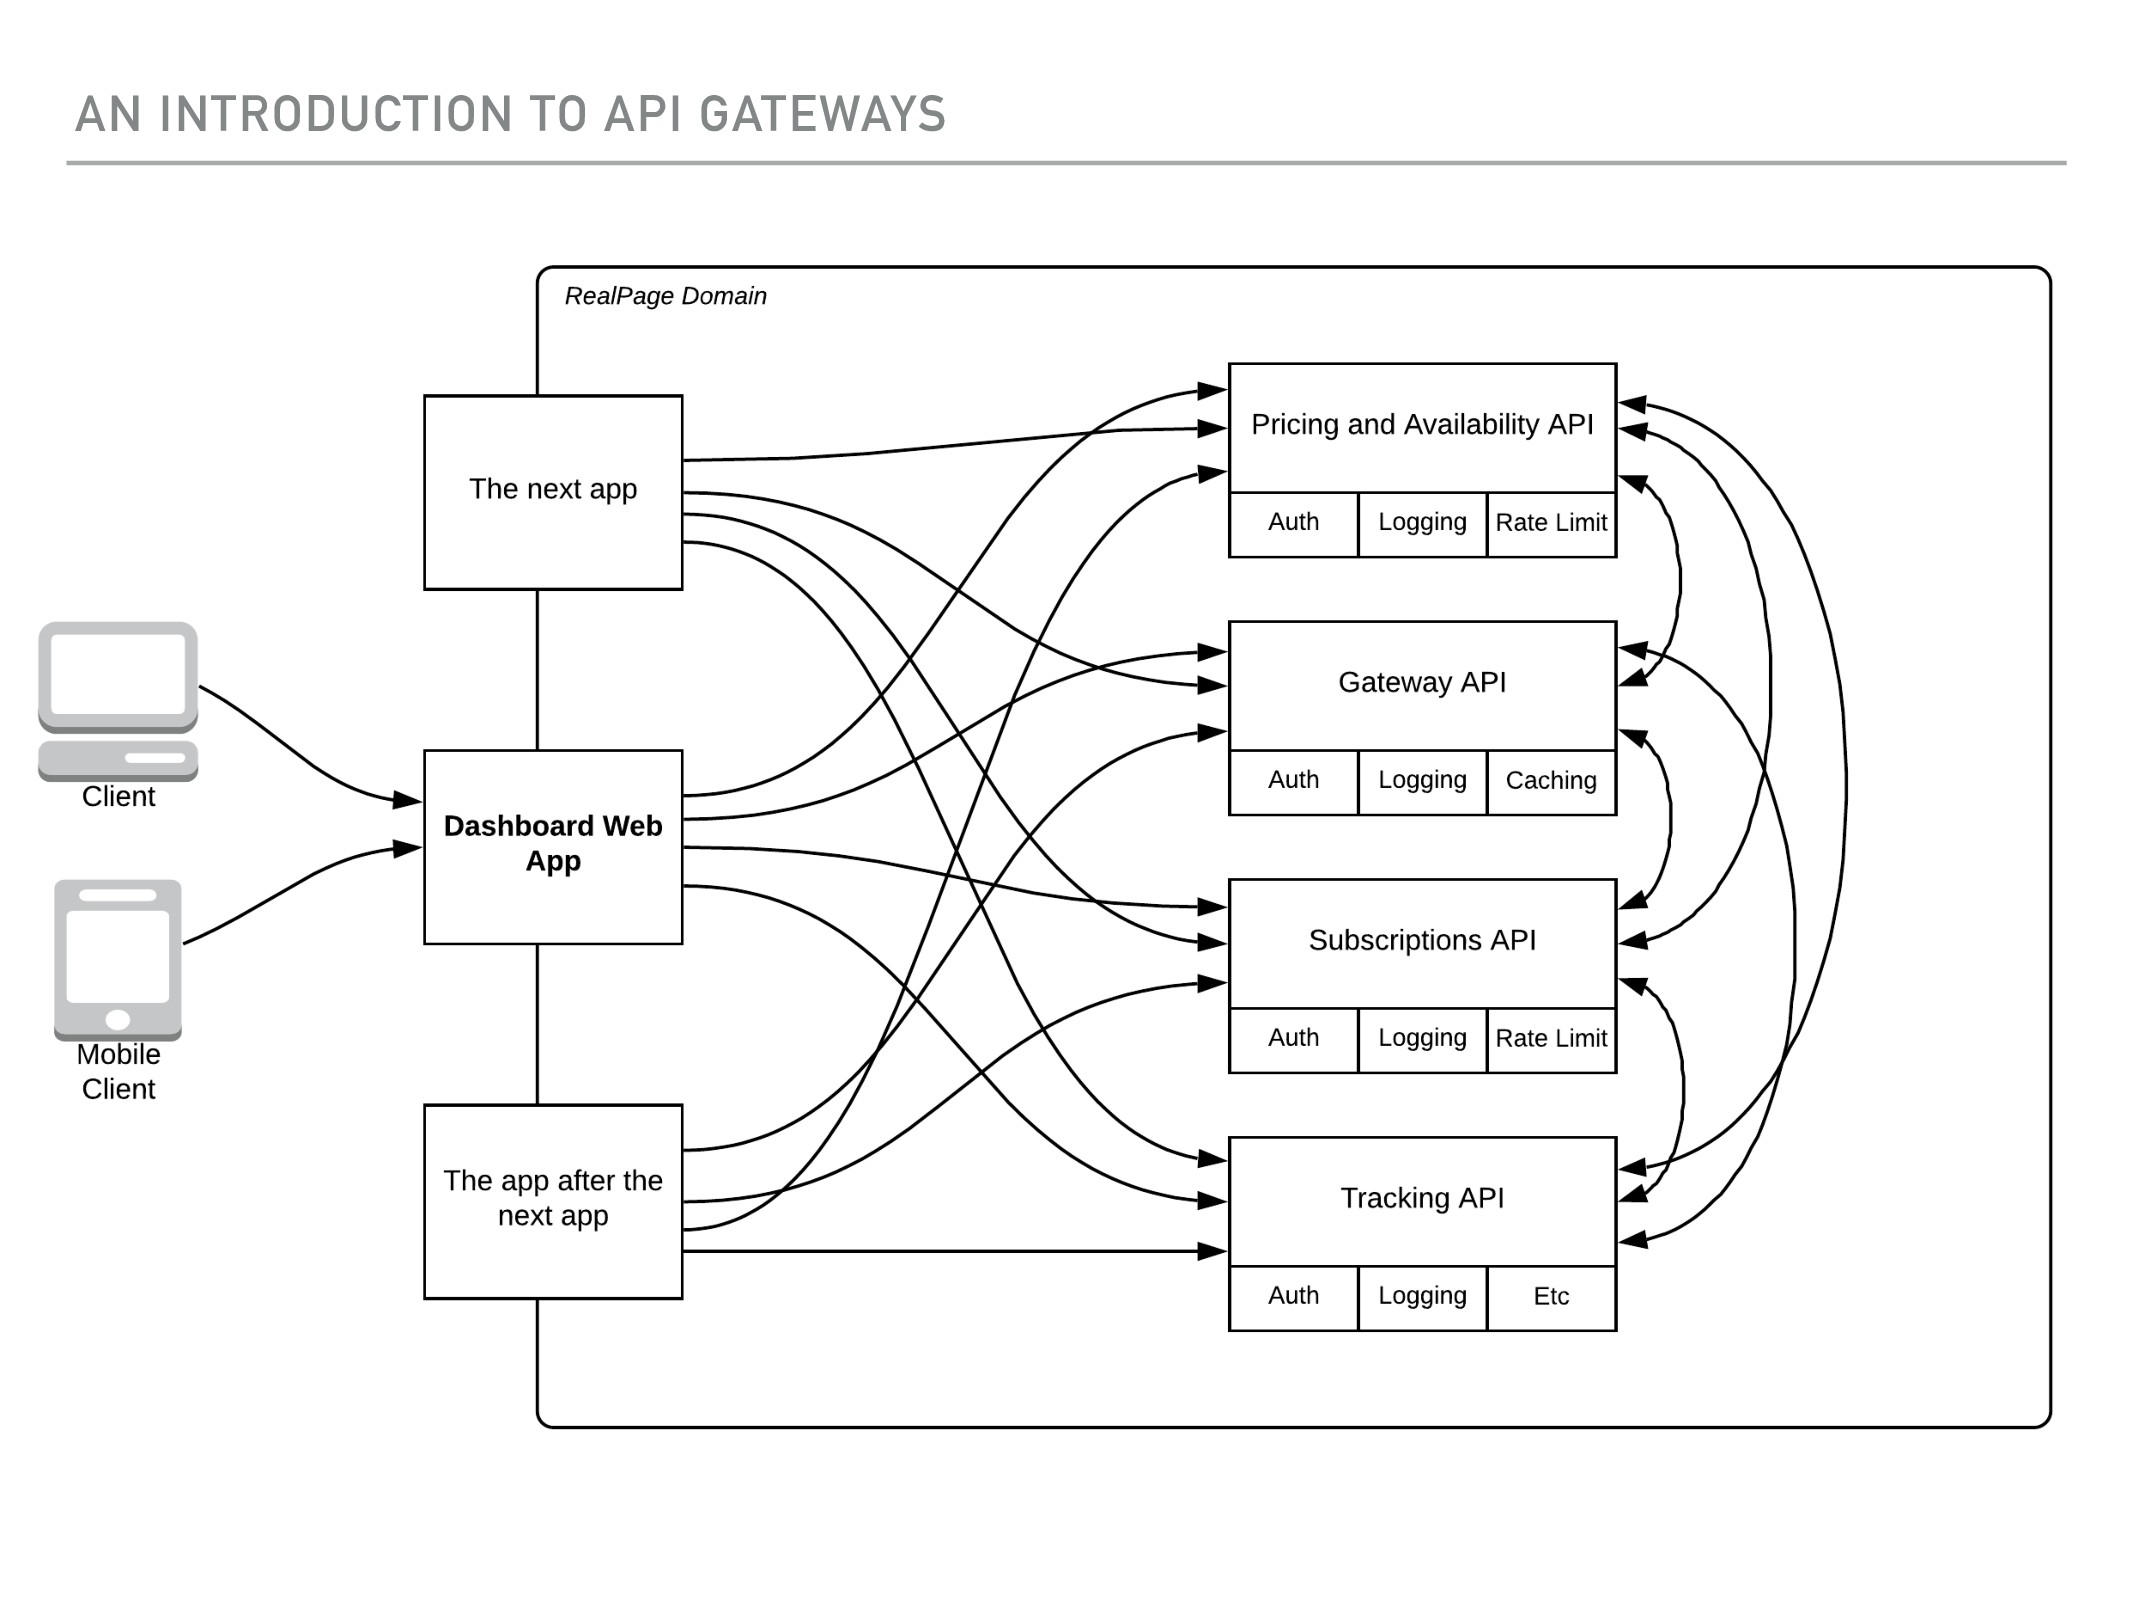 AN INTRODUCTION TO API GATEWAYS